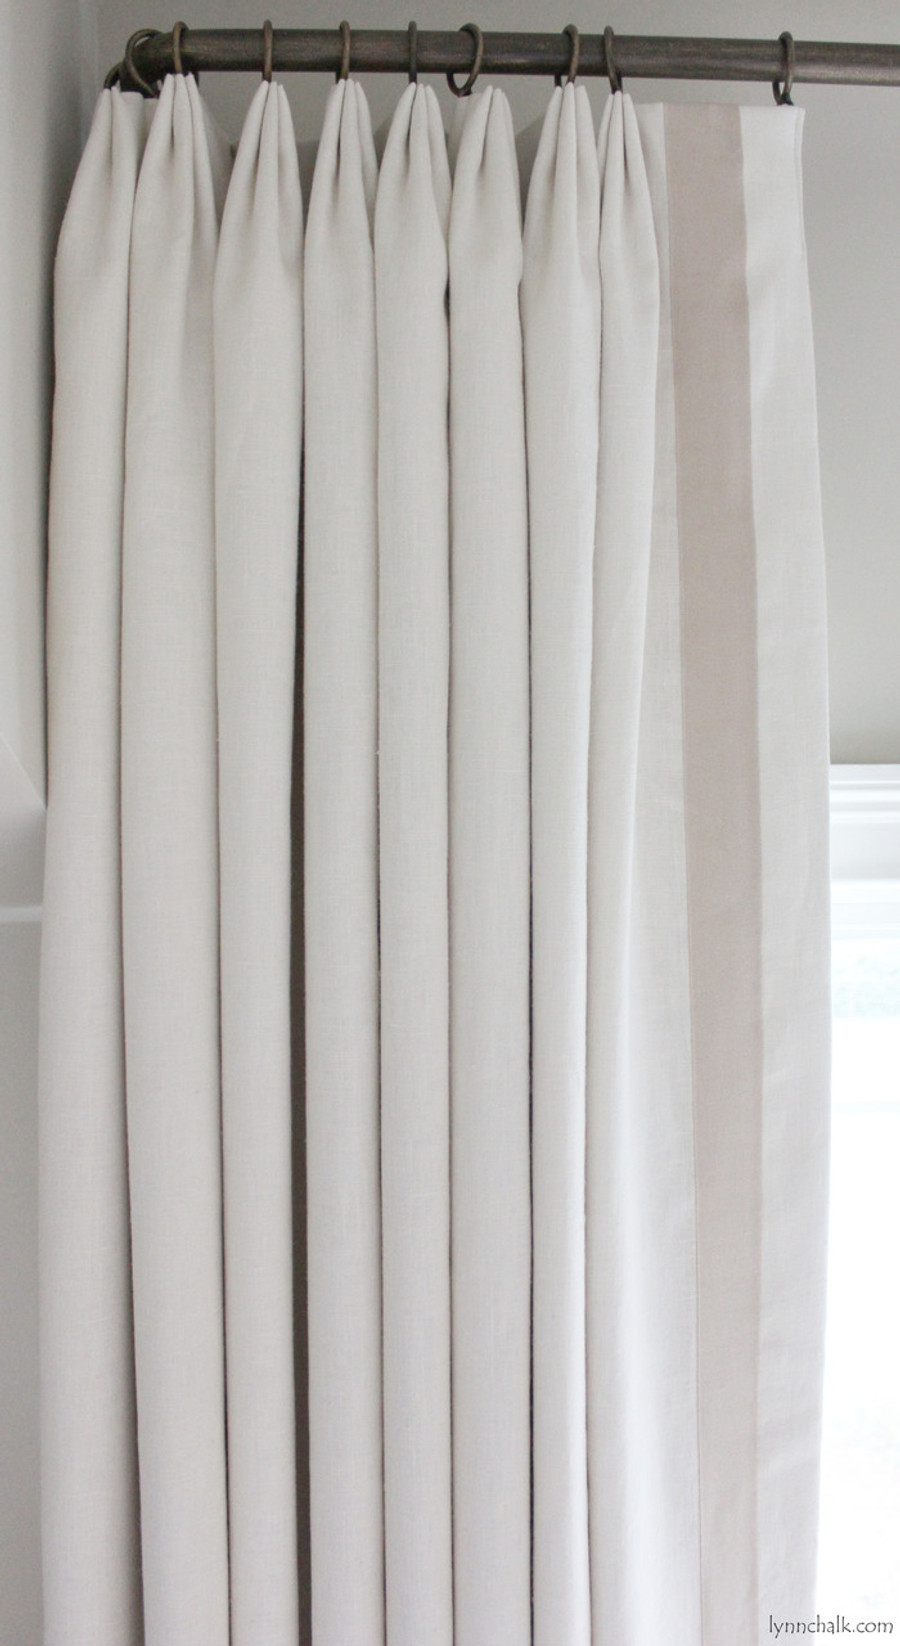 Ribbon Trim Curtains Custom Euro Pleated Drapes In Kravet Dublin Linen With Samuel Sons Grosgrain Trim Sand